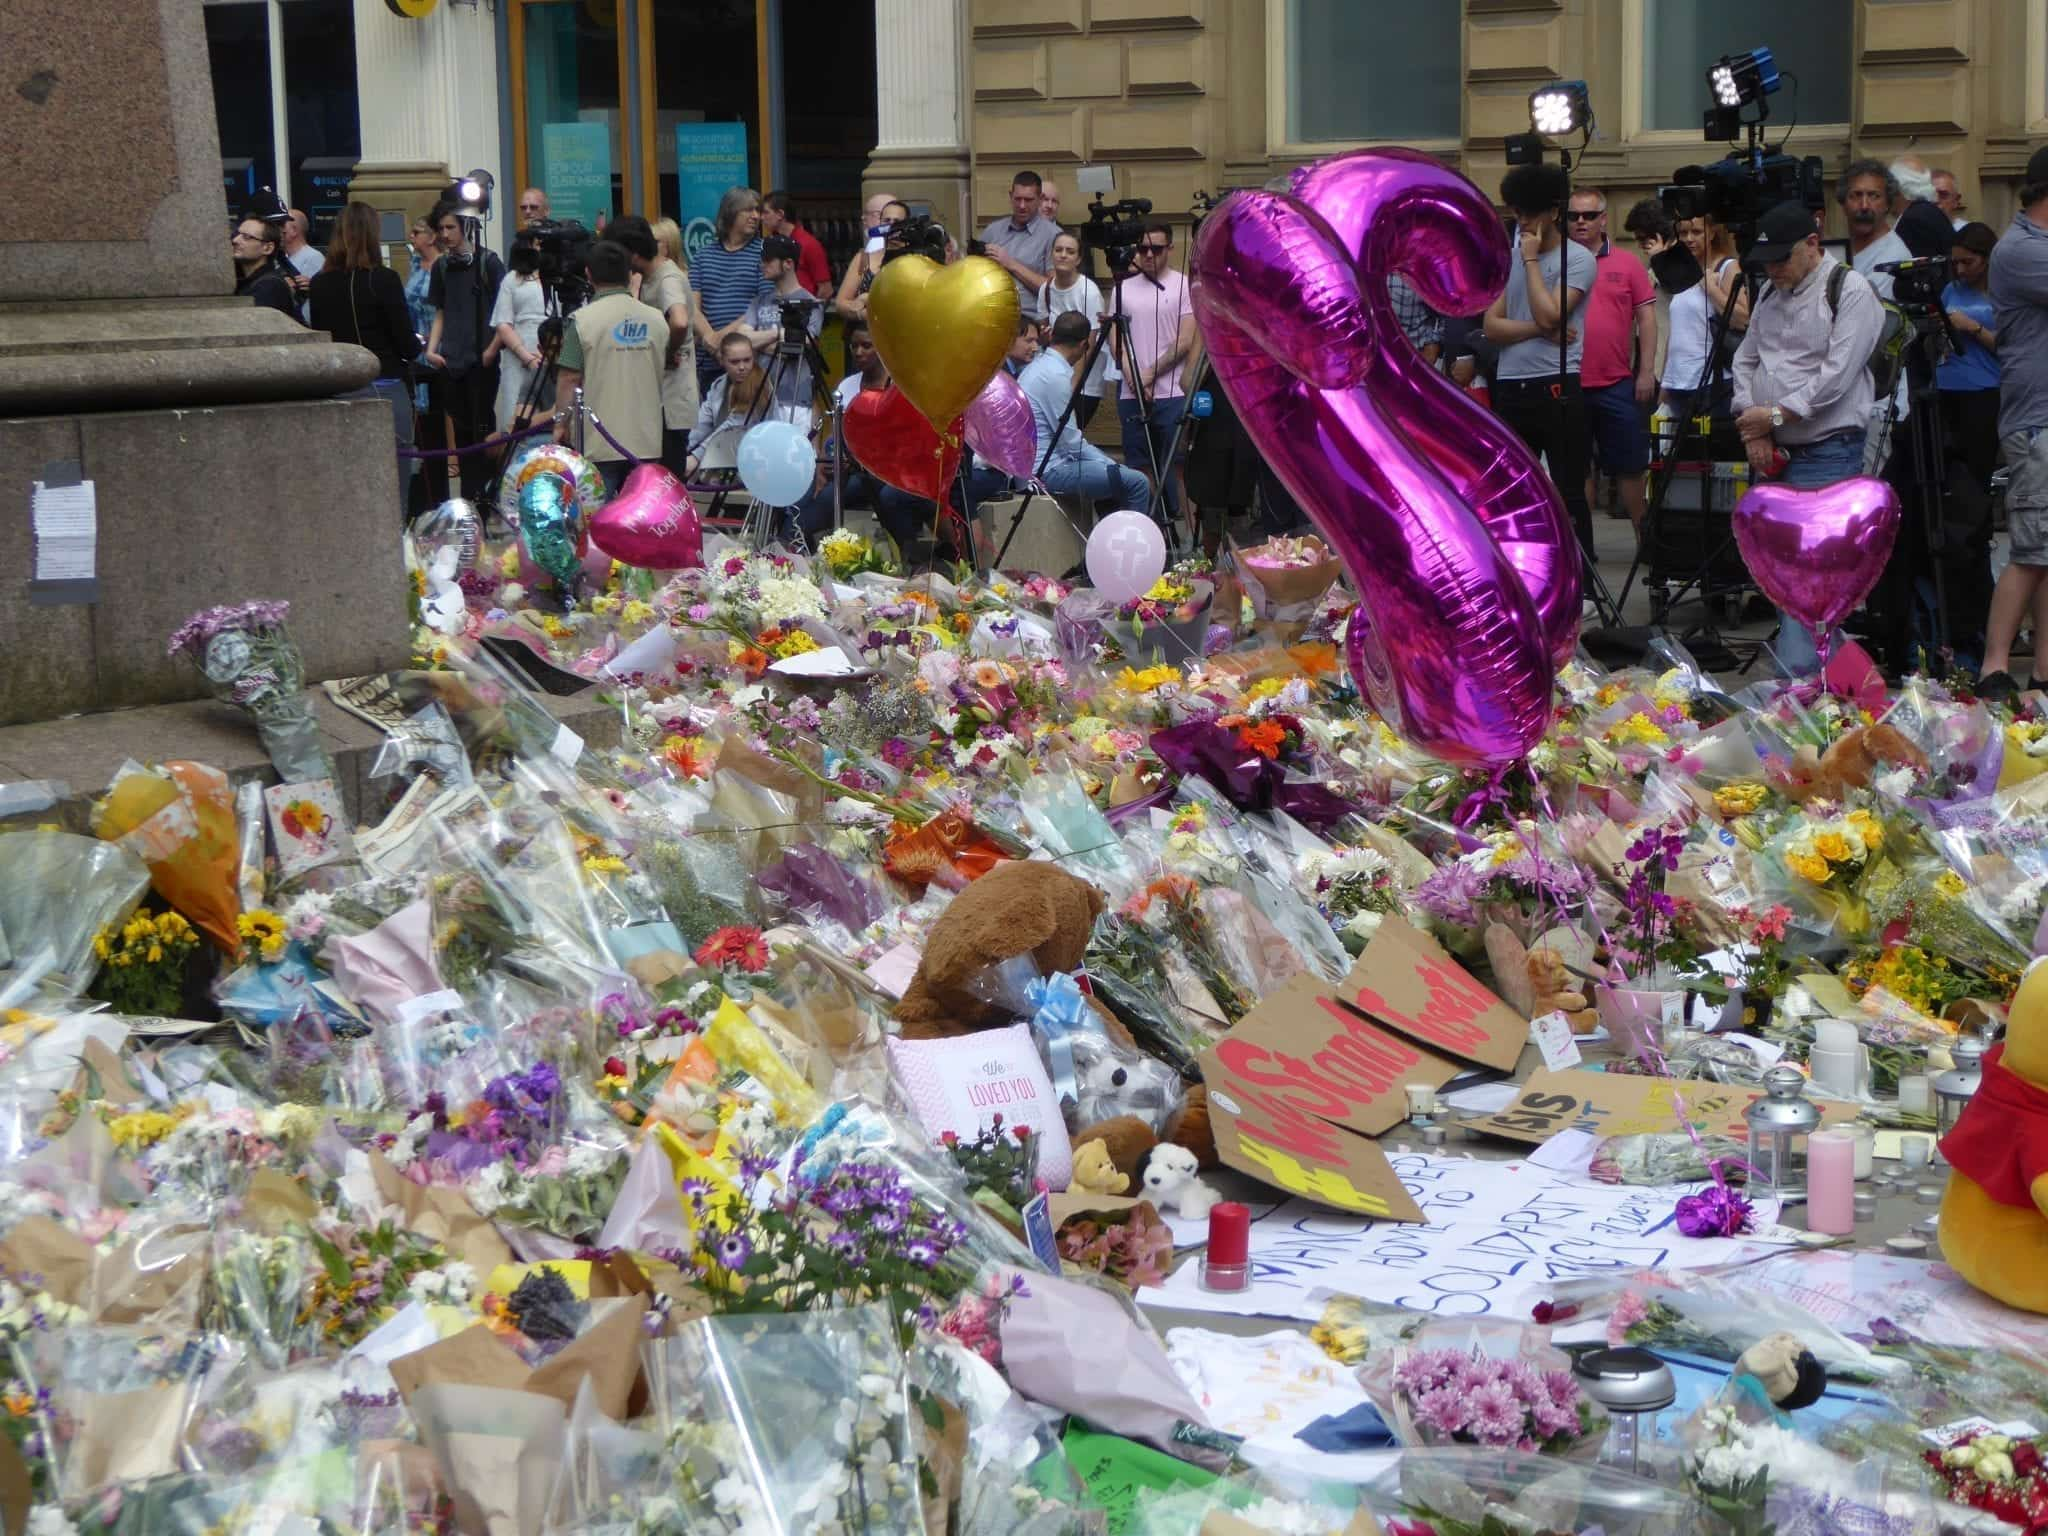 Tributes and memorials at St Ann's Square,Manchester, England, following the Manchester Arena bombing, May 2017. By Ardfern (Own work), CC BY-SA 4.0, via Wikimedia Commons, no changes.